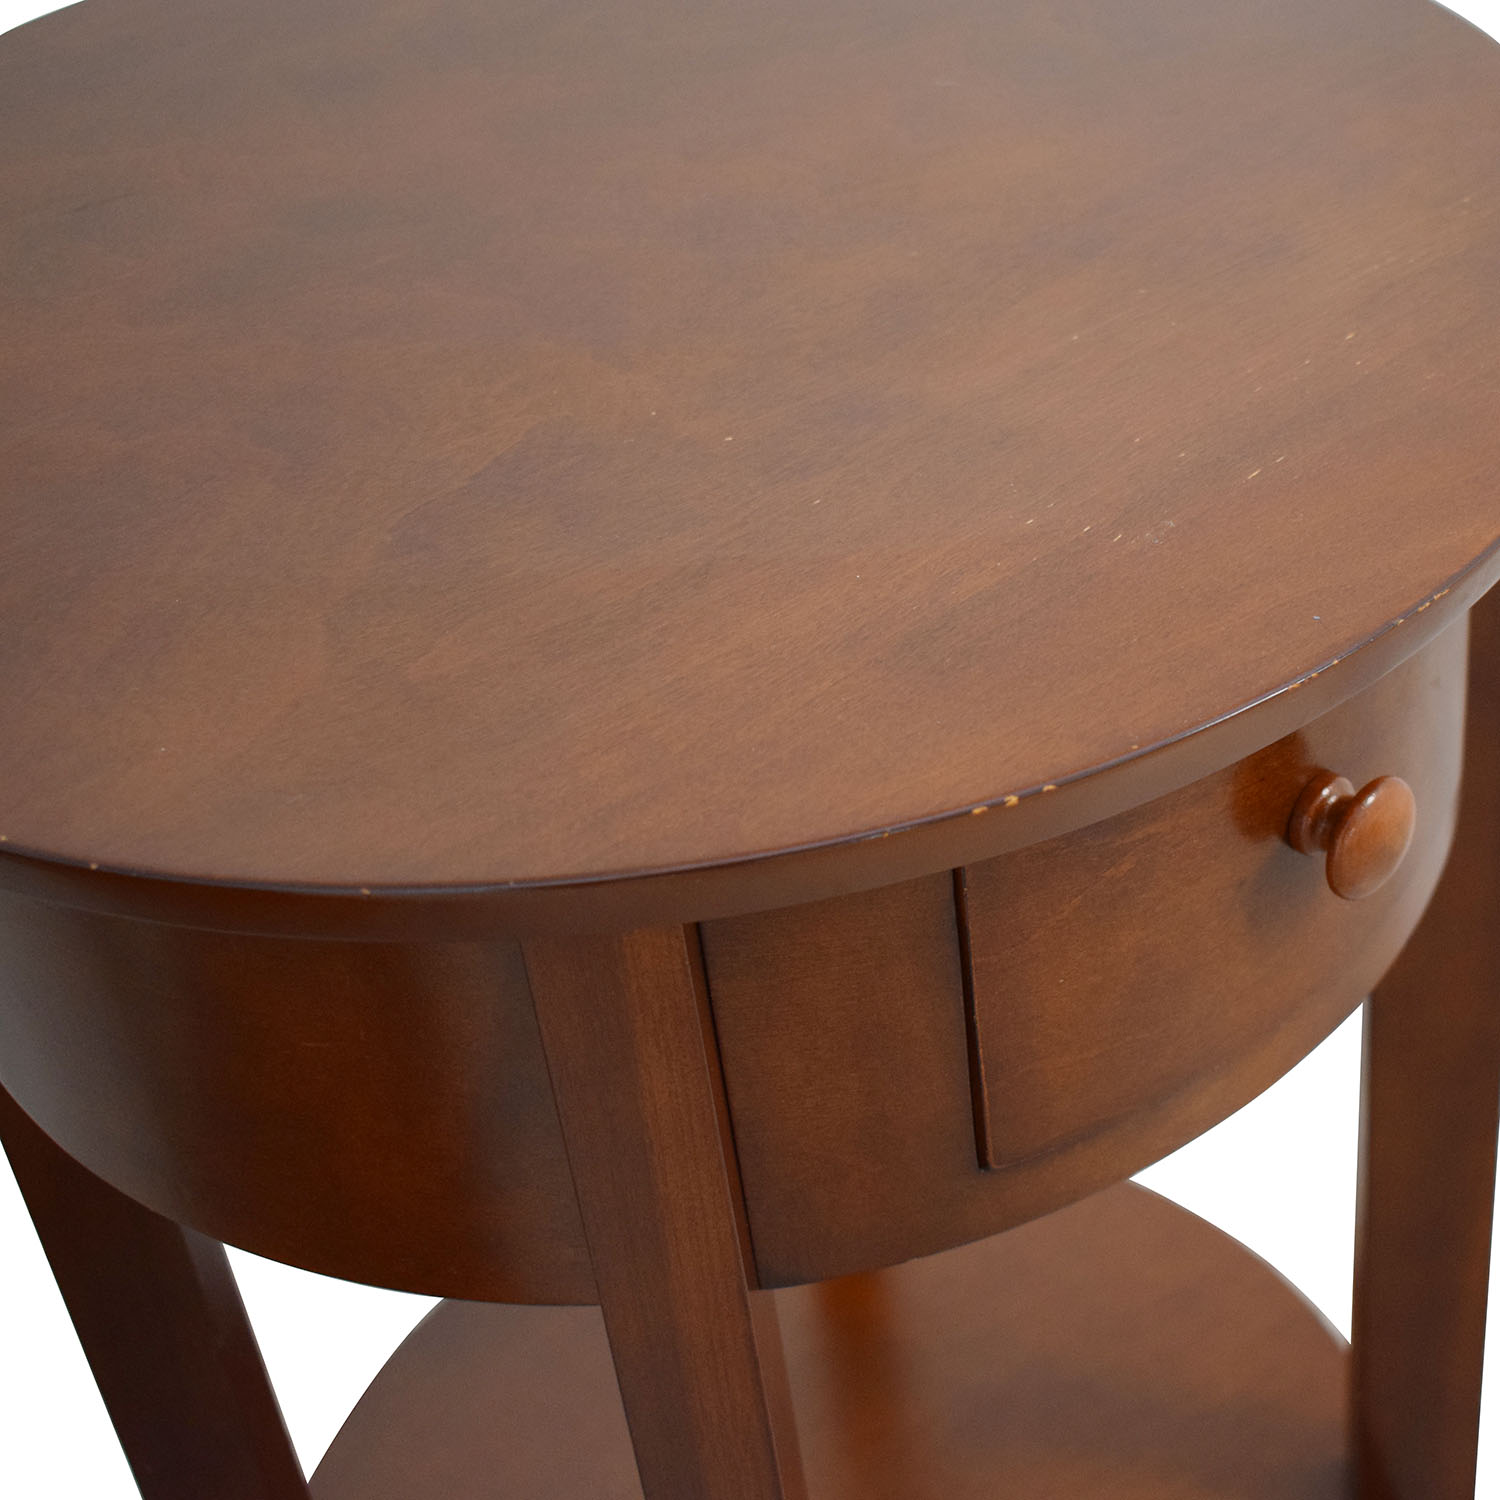 Pottery Barn Pottery Barn Oval Nightstands End Tables